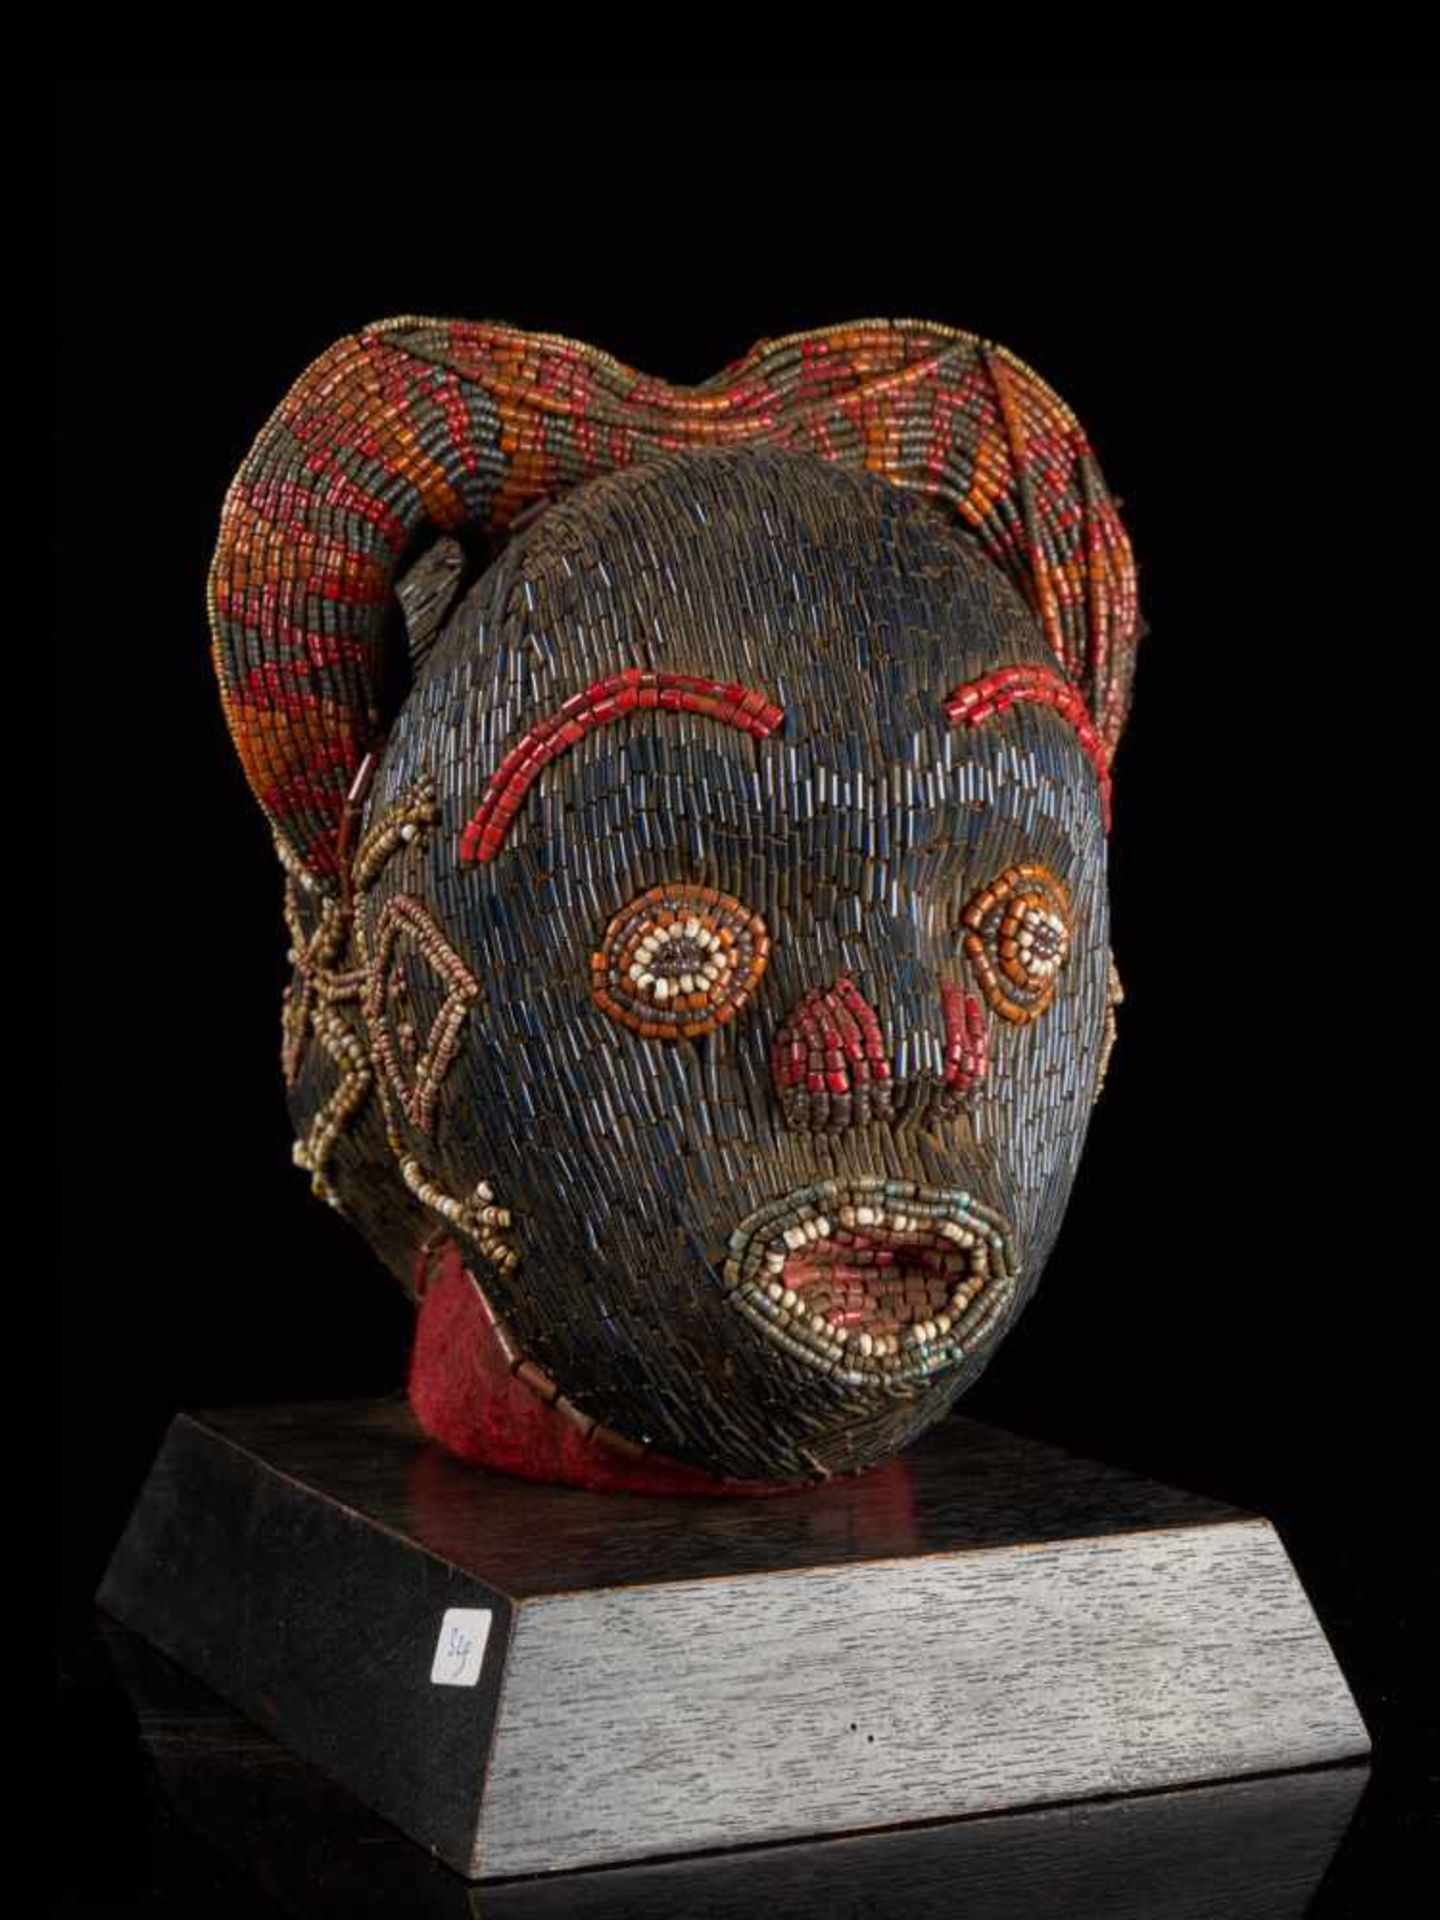 Beaded Janus Head Sculpture With Headdress - Tribal ArtThis beautiful two-faced head sculpture is - Bild 5 aus 6